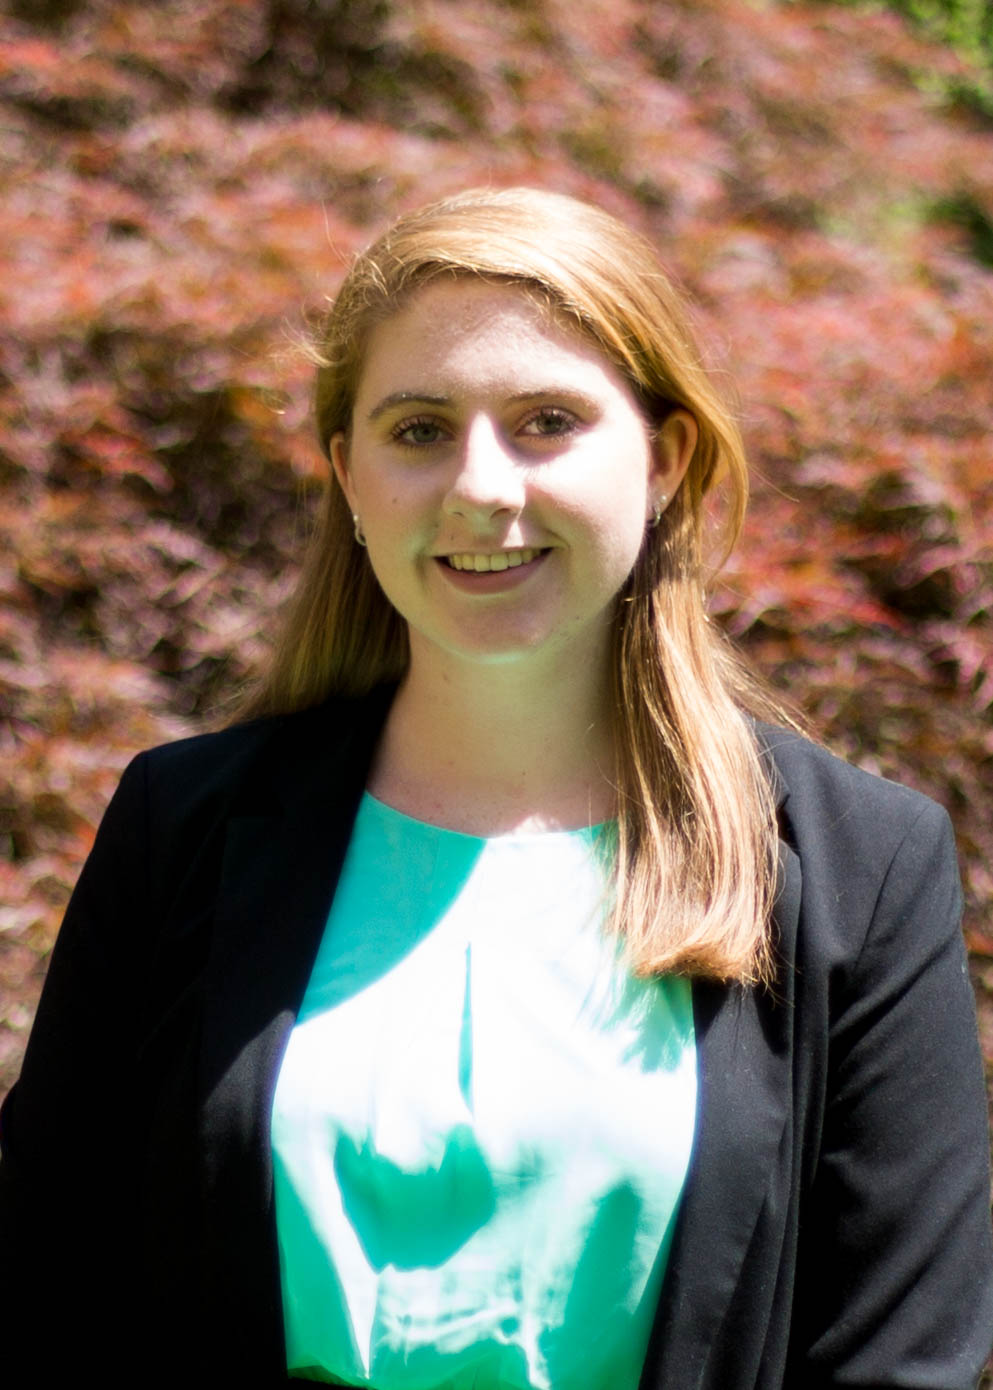 SAM PELLETIER '20 | LEAD TECHNOLOGY OFFICER - Born and raised in Milford, Massachusetts, Sam is a sophomore interested in studying Computer Science and Psychology. Outside of HSA, Sam is a member of the Leadership Institute at Harvard College. She spends most of her free time drinking iced coffee -- like a true New Englander --, binge watching Criminal Minds, and listening to 80s music.